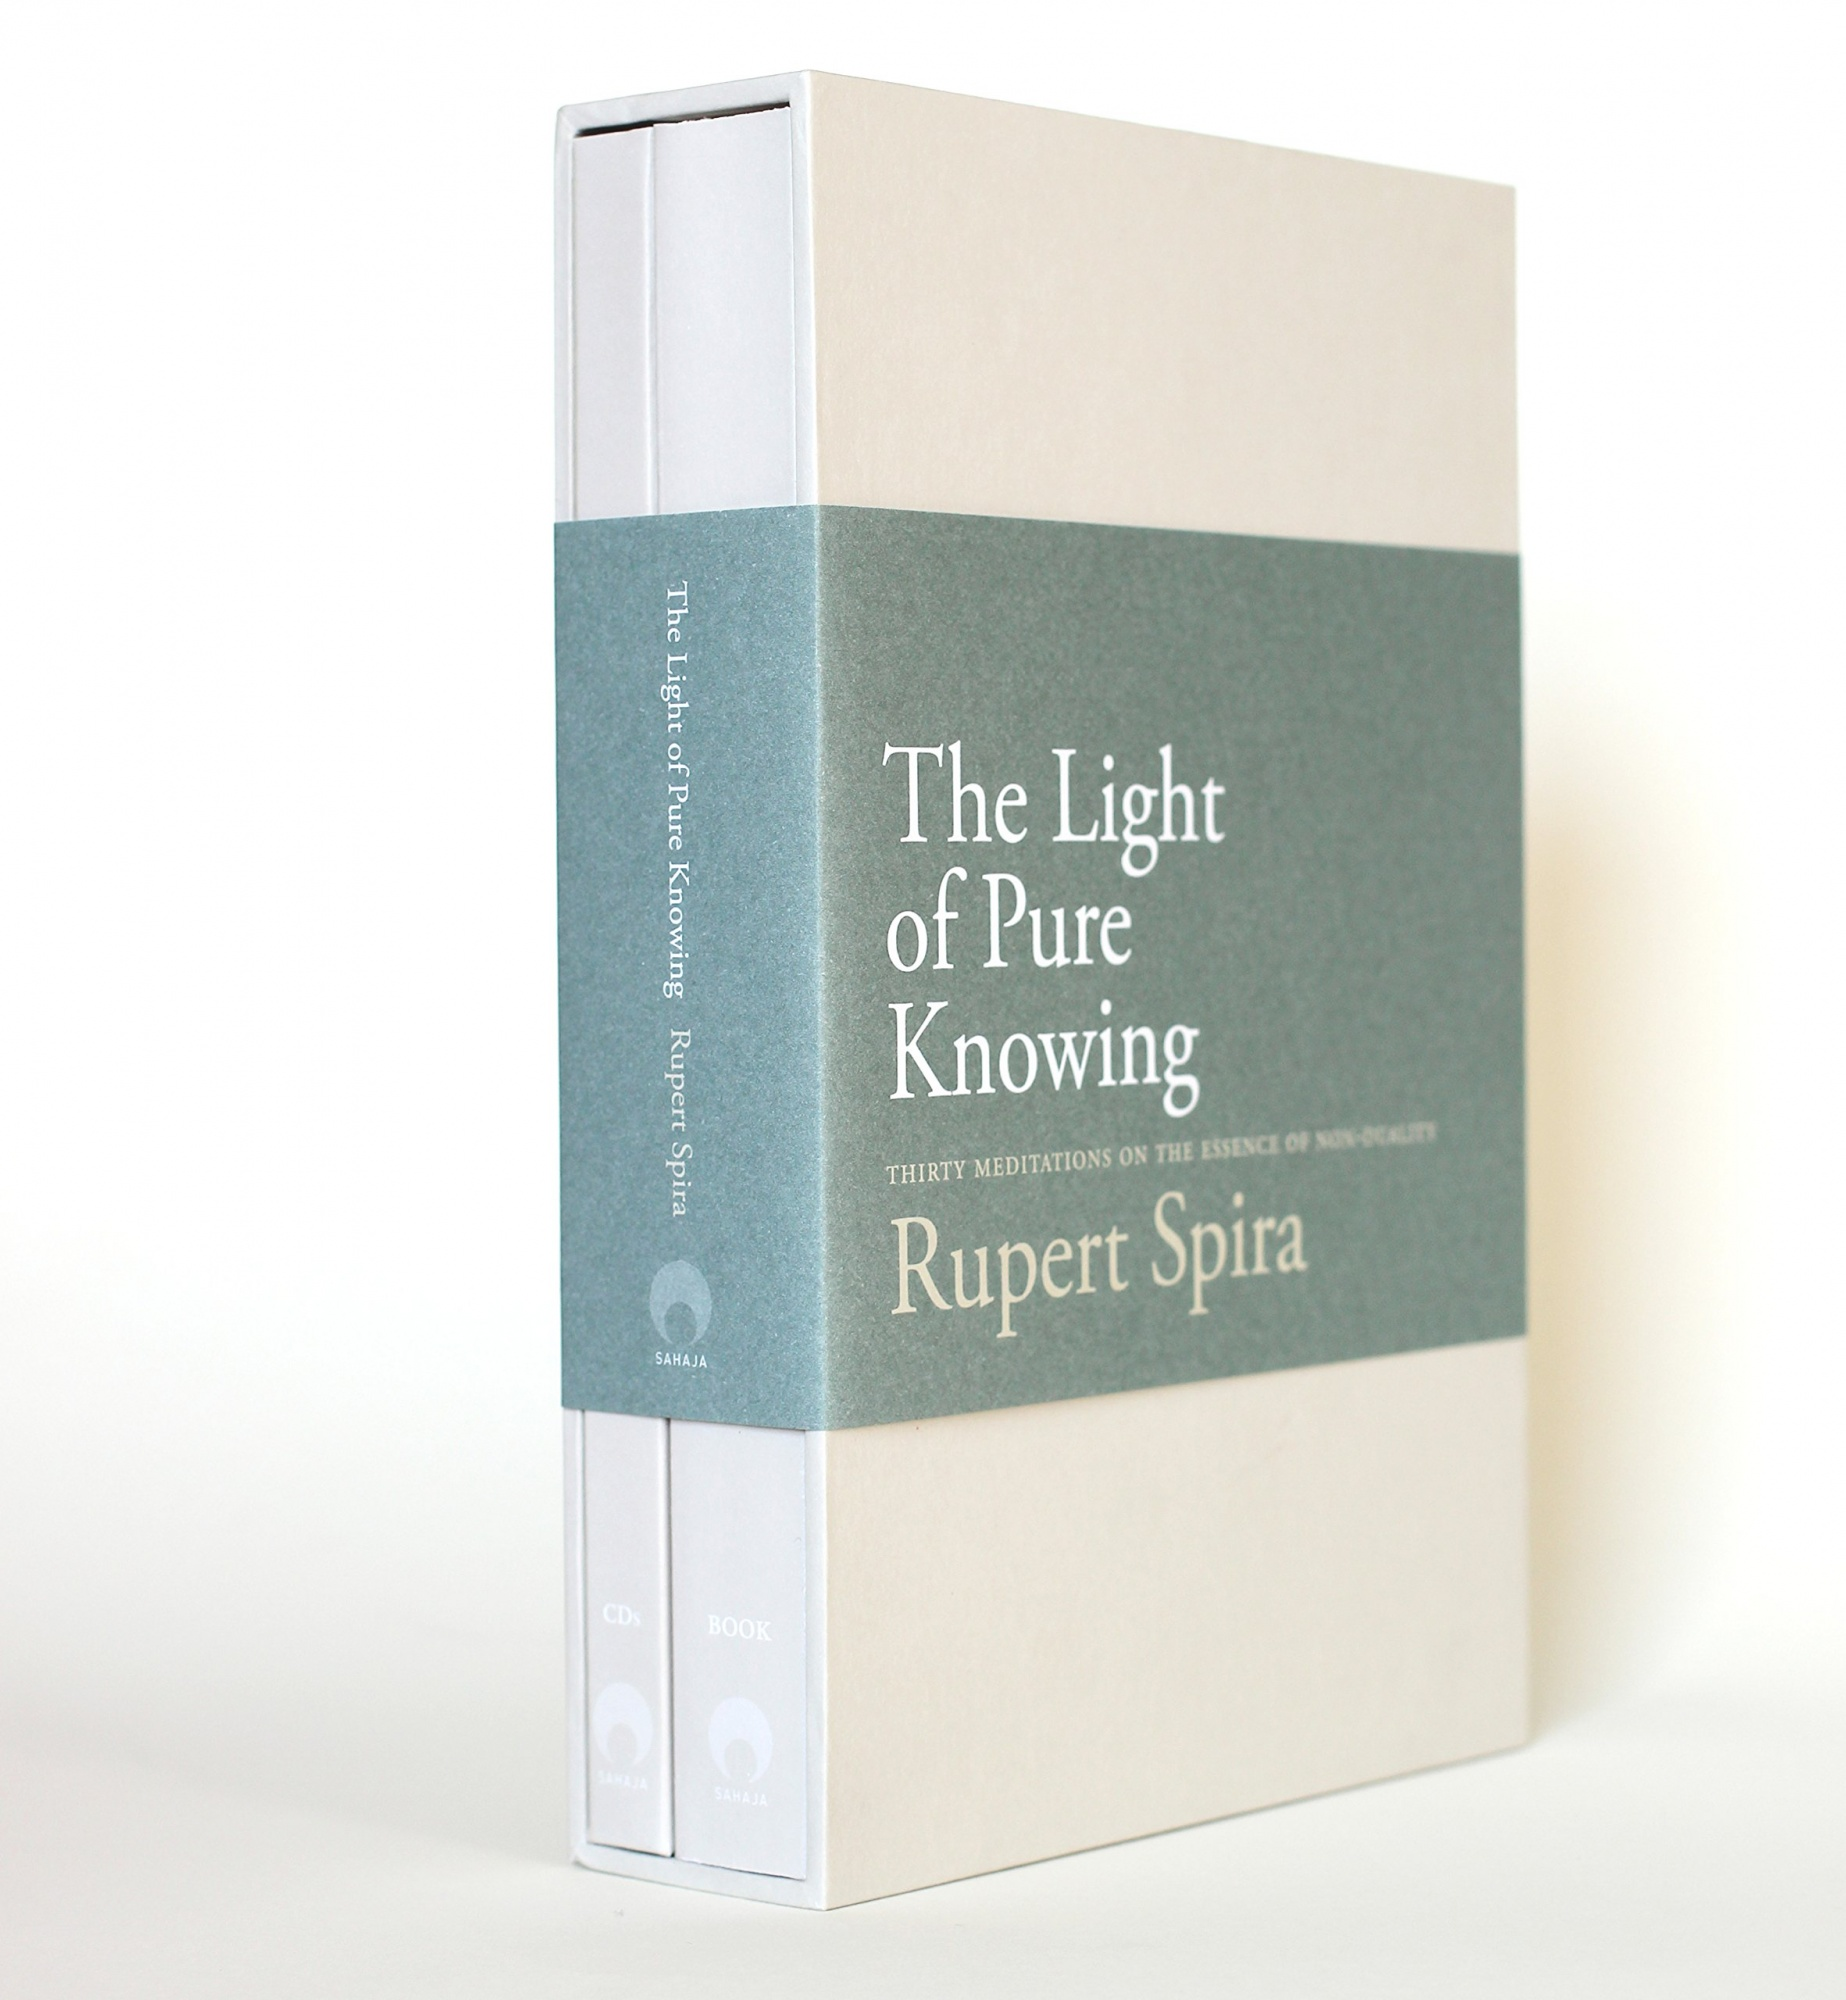 The Light of Pure Knowing: Thirty Meditations on the Essence of Non-Duality by Rupert Spira, ISBN: 9780992972608